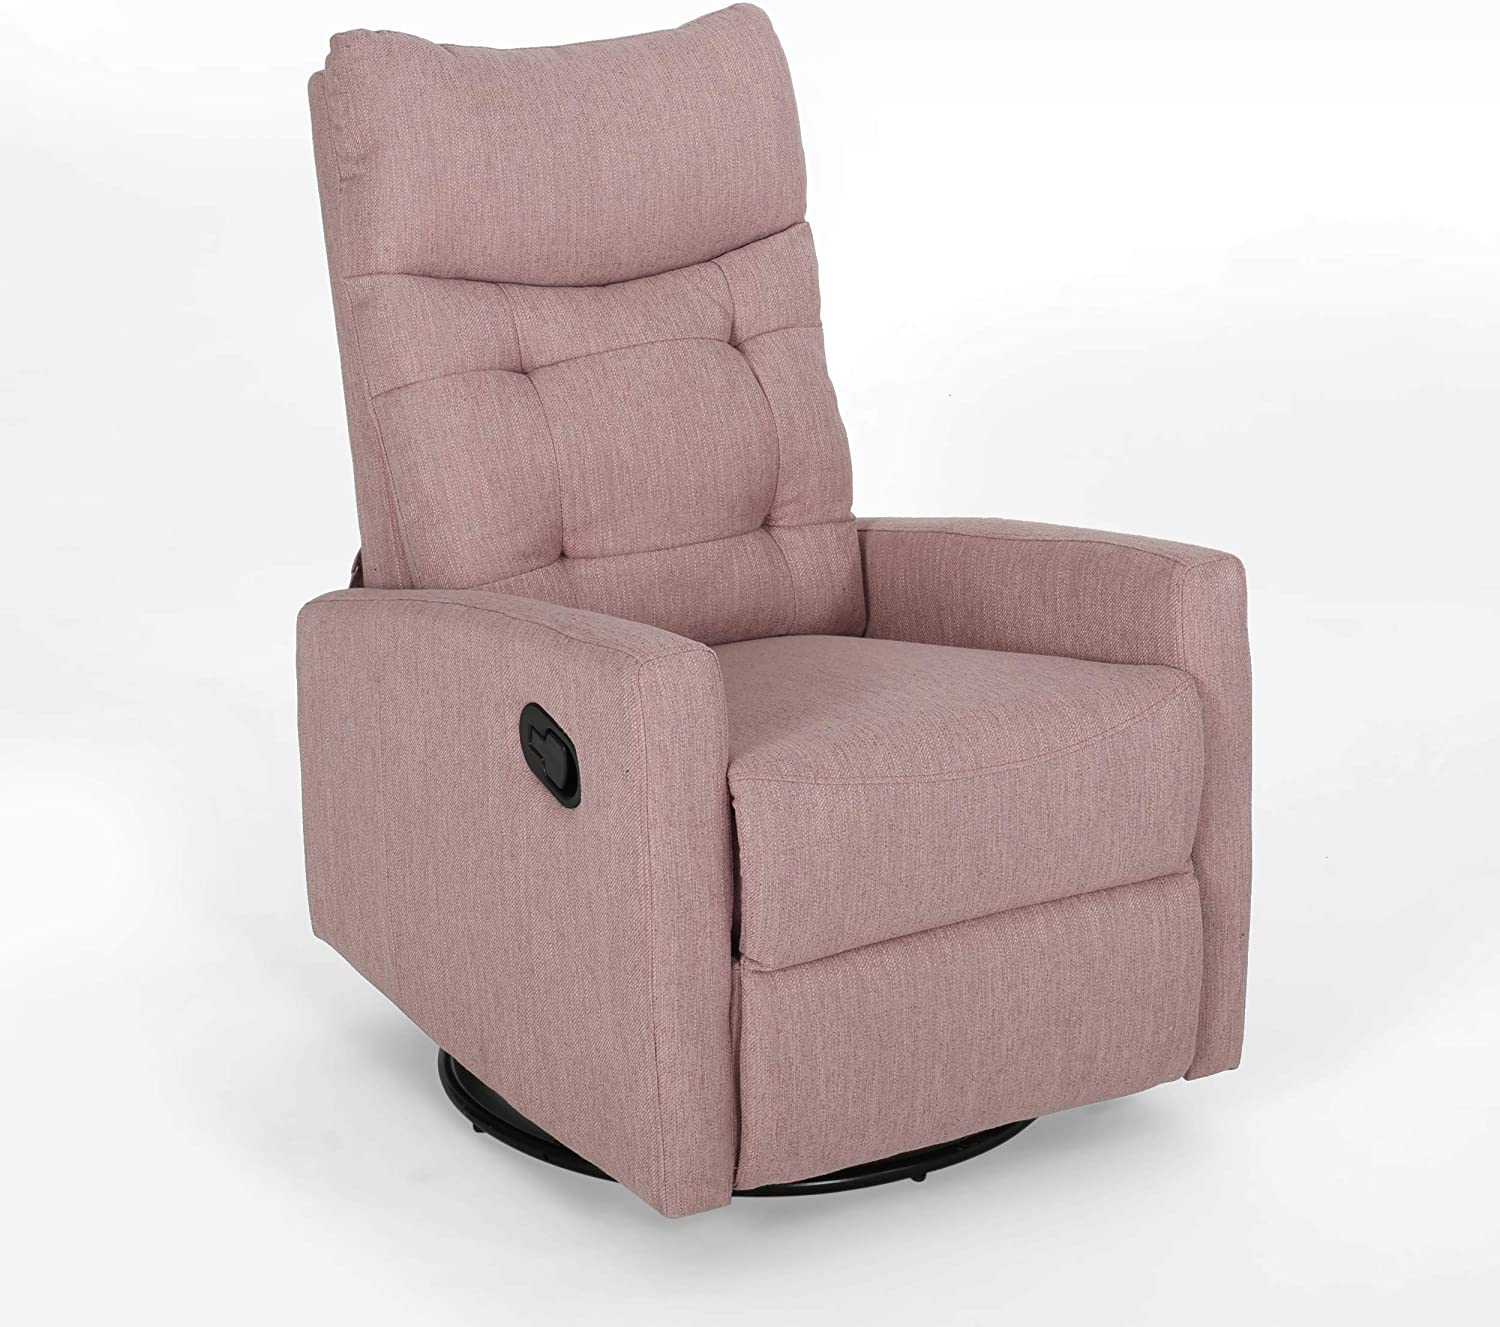 Christopher Knight Home Ishtar Glider Swivel Push Back Nursery Recliner, Light Blush, Black